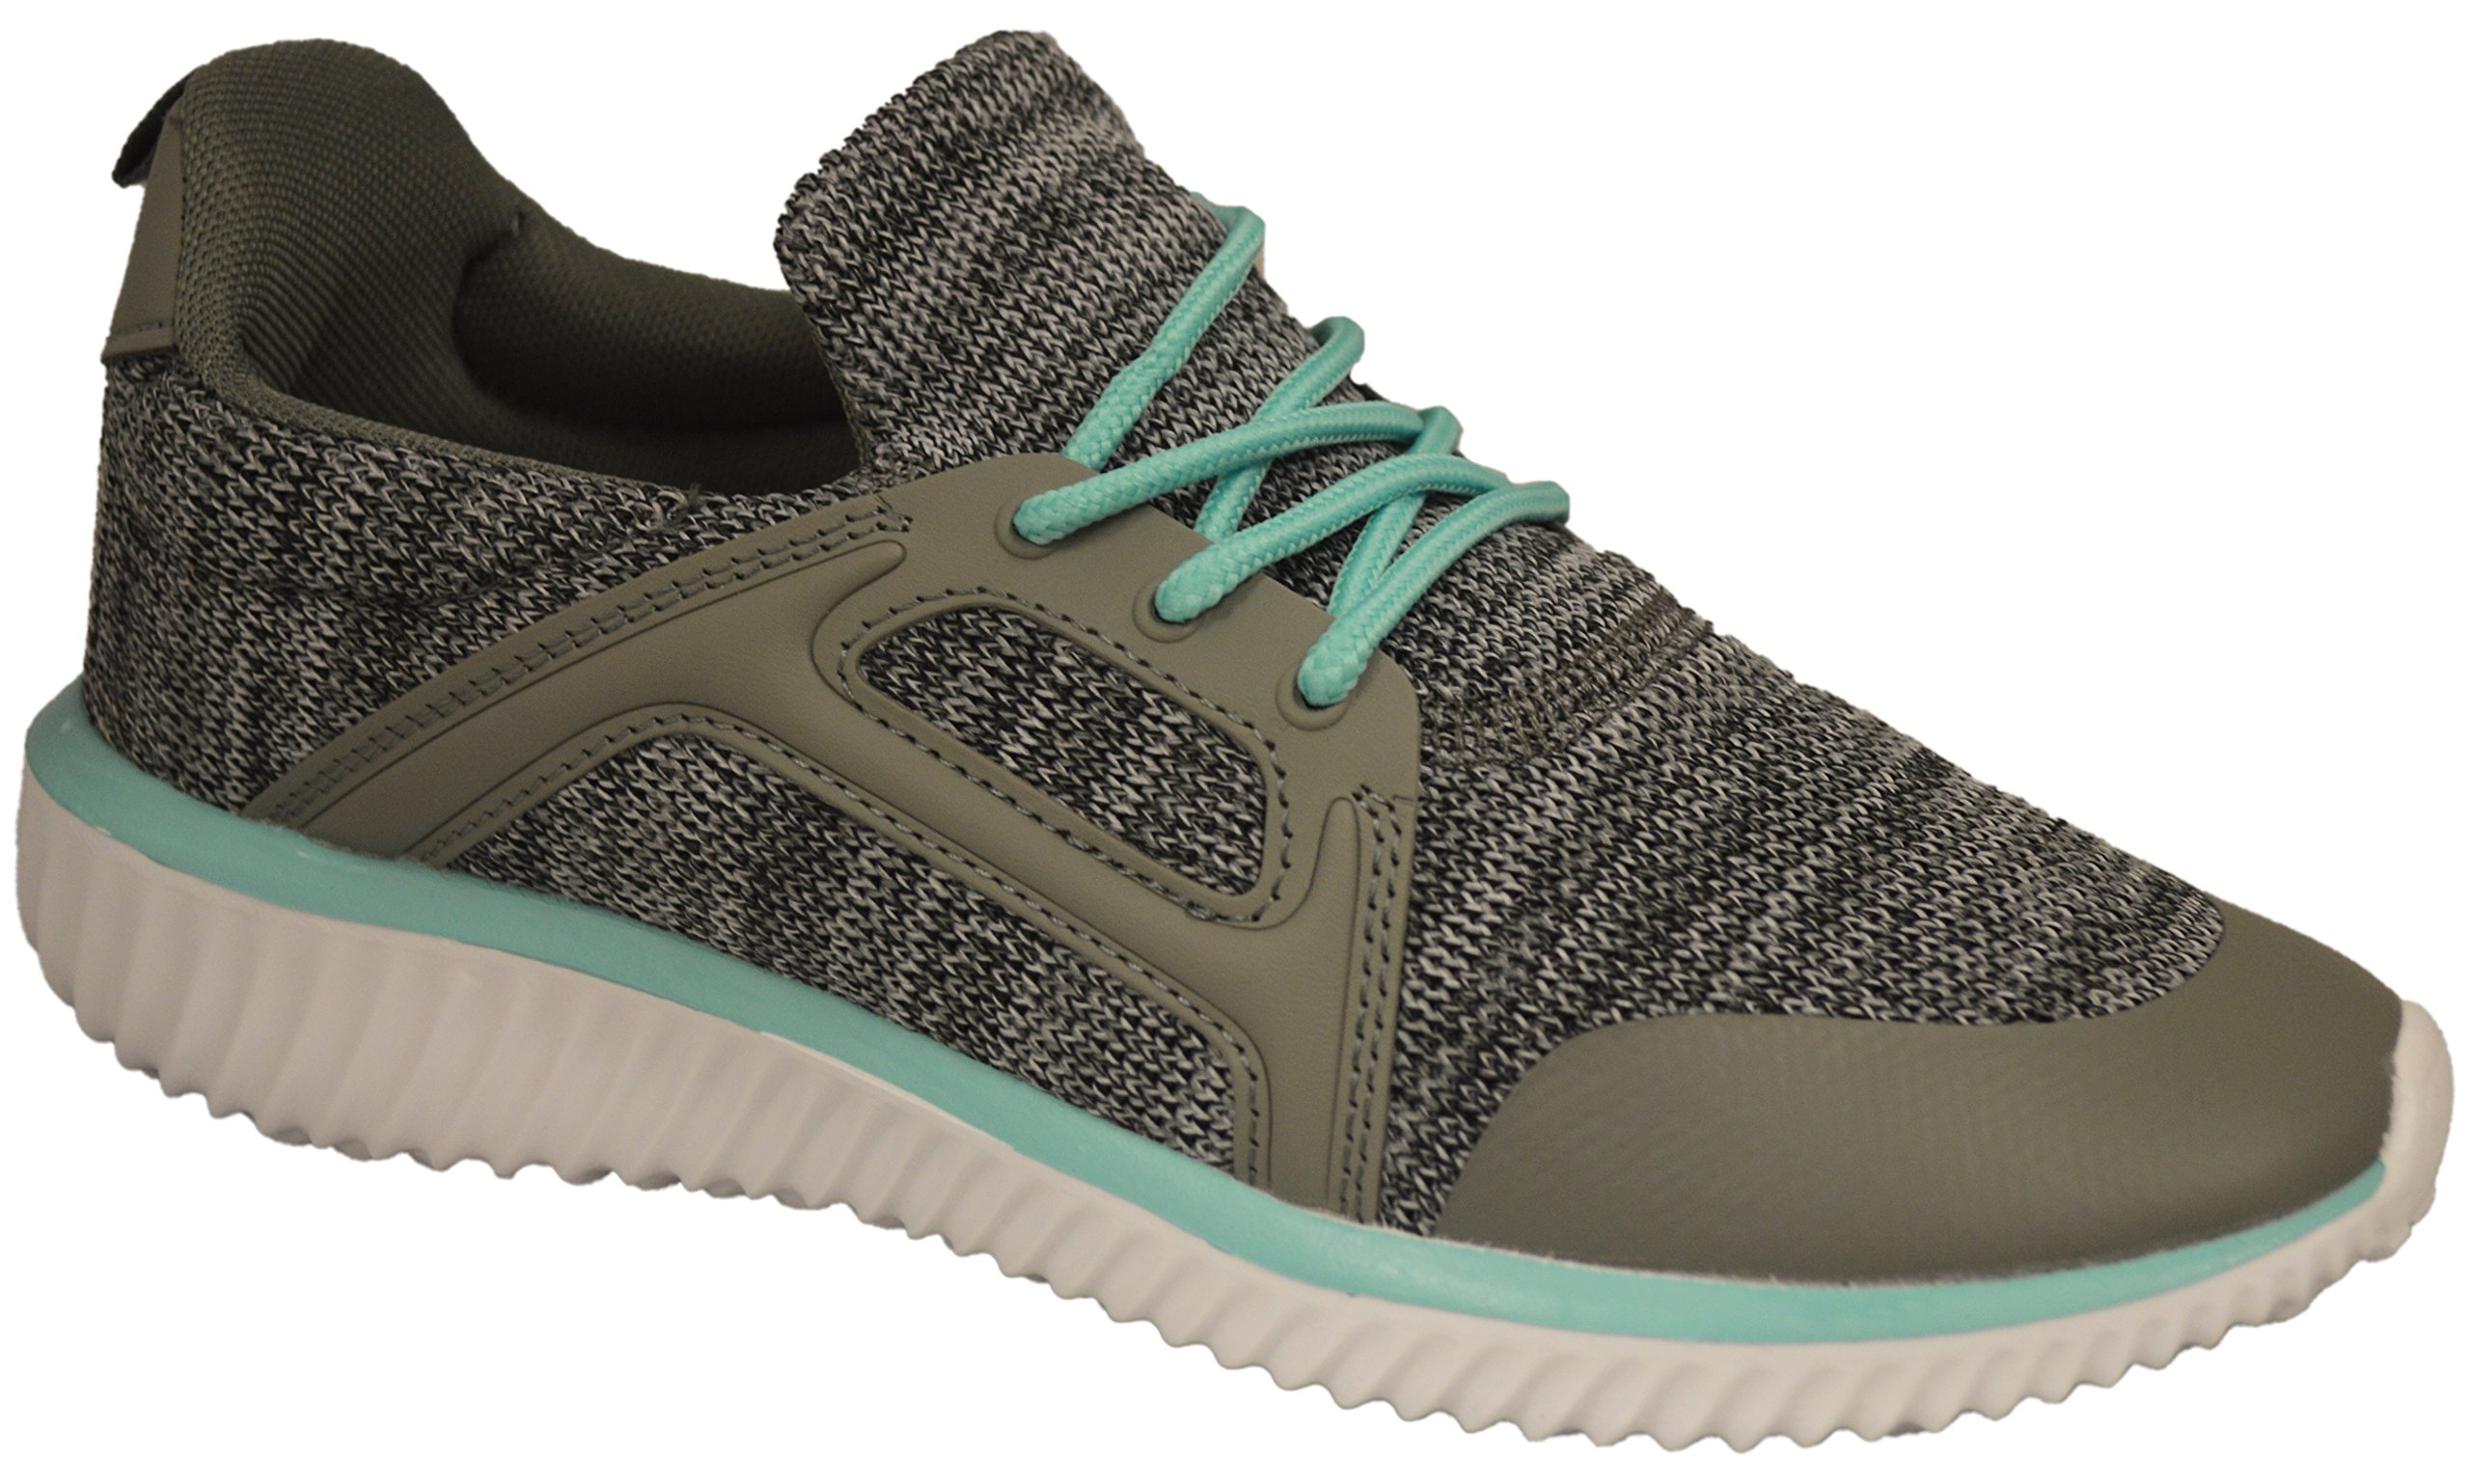 Shop Pretty Girl Womens Sneakers Athletic Knit Mesh Running Light Weight Go Easy Walking Casual Comfort Running Shoes 2.0 (10, Green and Grey - J3947B)